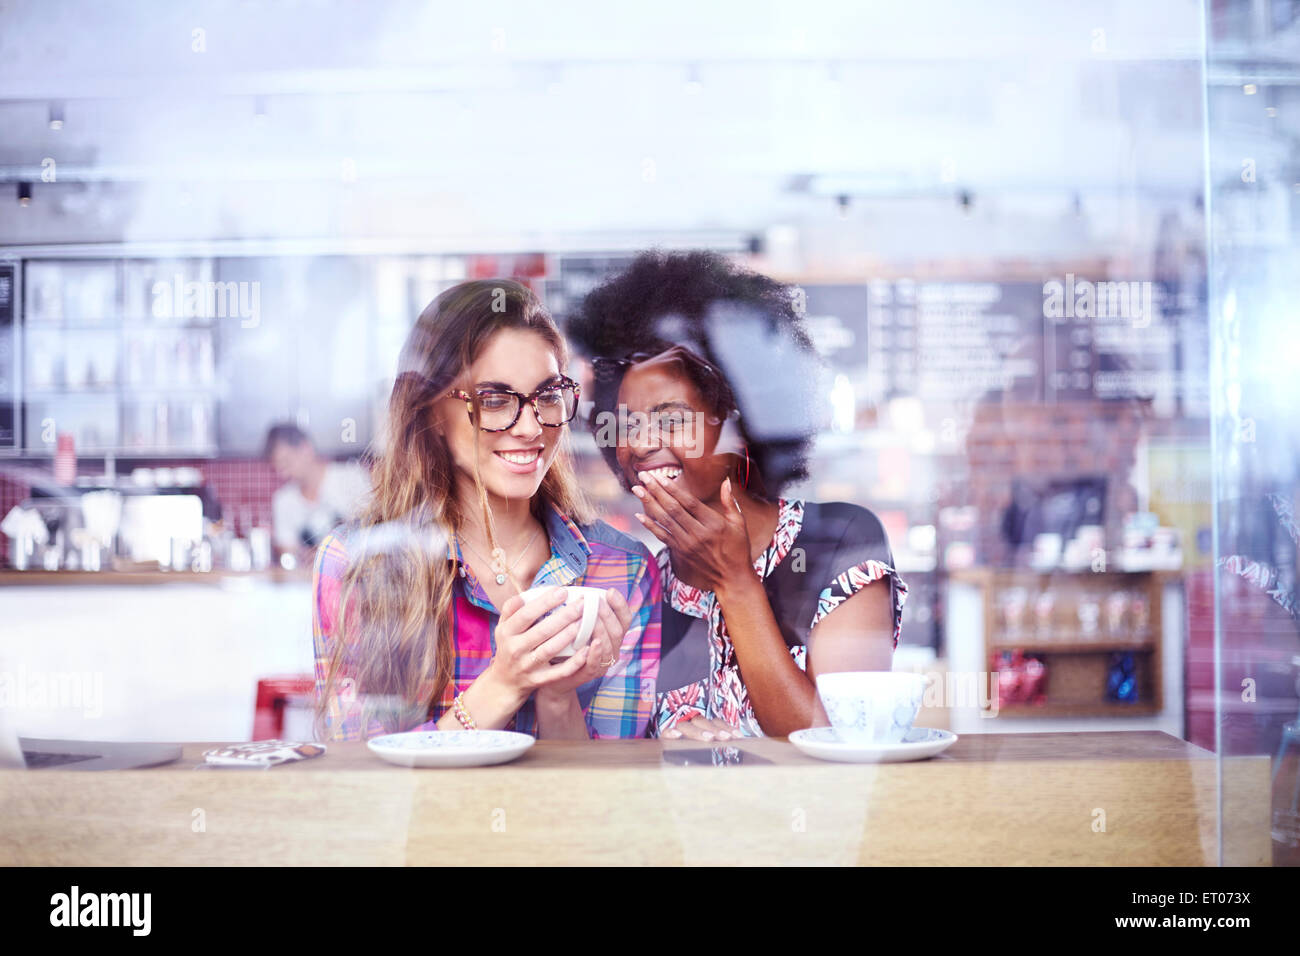 Women laughing and drinking coffee in cafe window Stock Photo